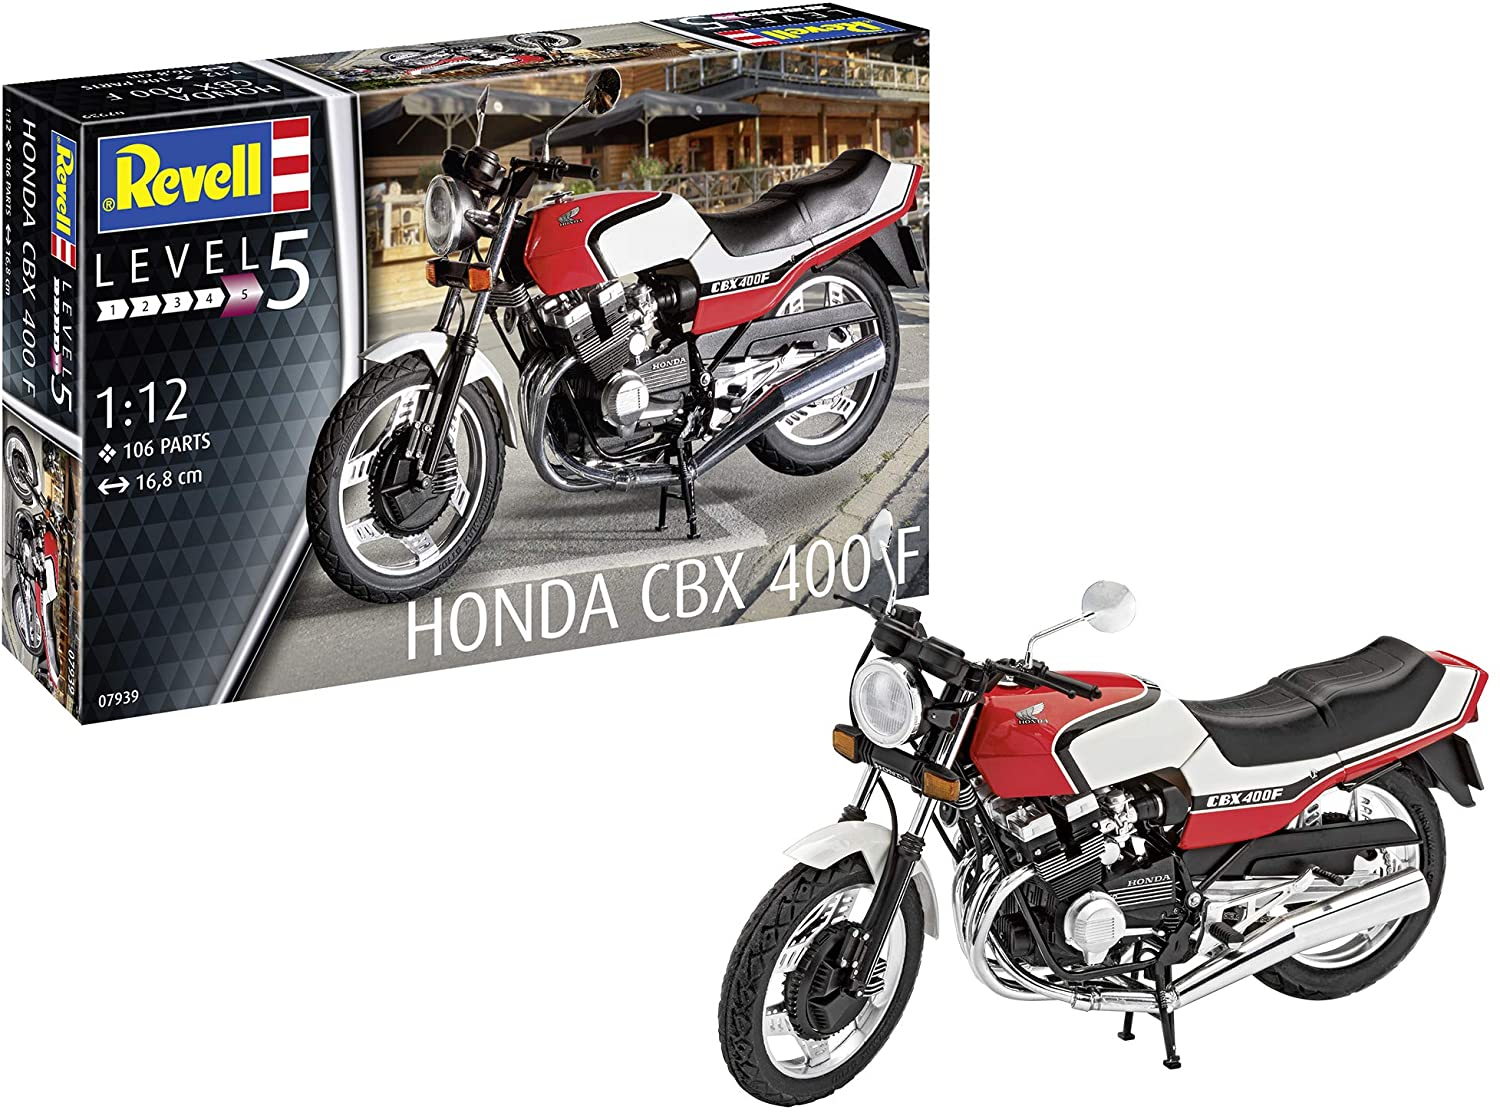 Revell GmbH 07939 Honda CBX 400 F Plastic Model Kit, White, 1:12